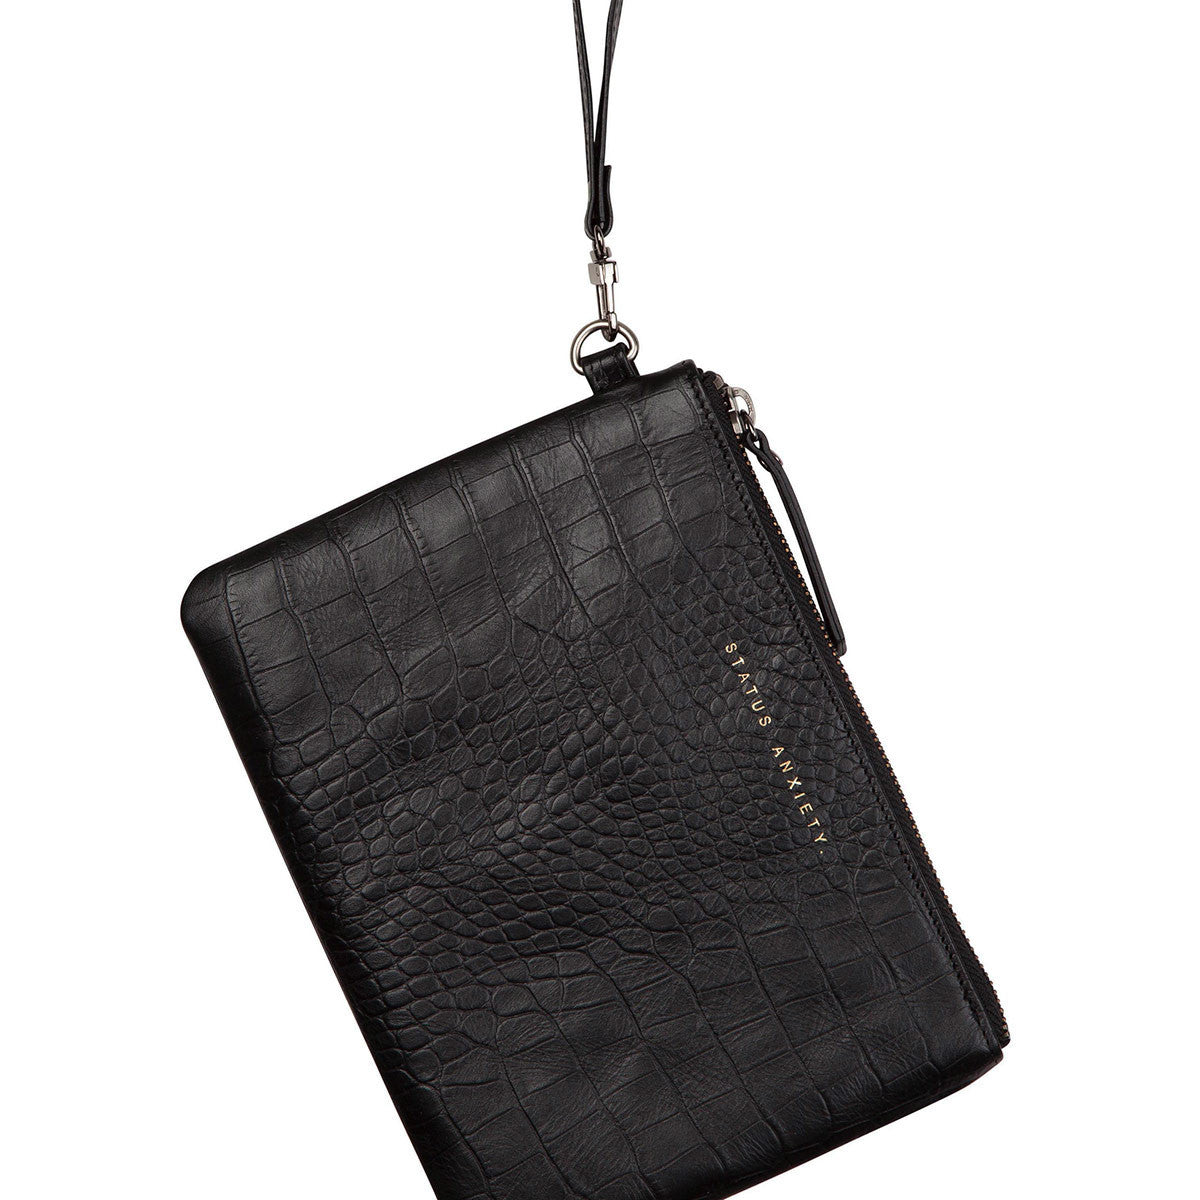 THE FIXATION BLACK CROC WALLET FROM STATUS ANXIETY 3